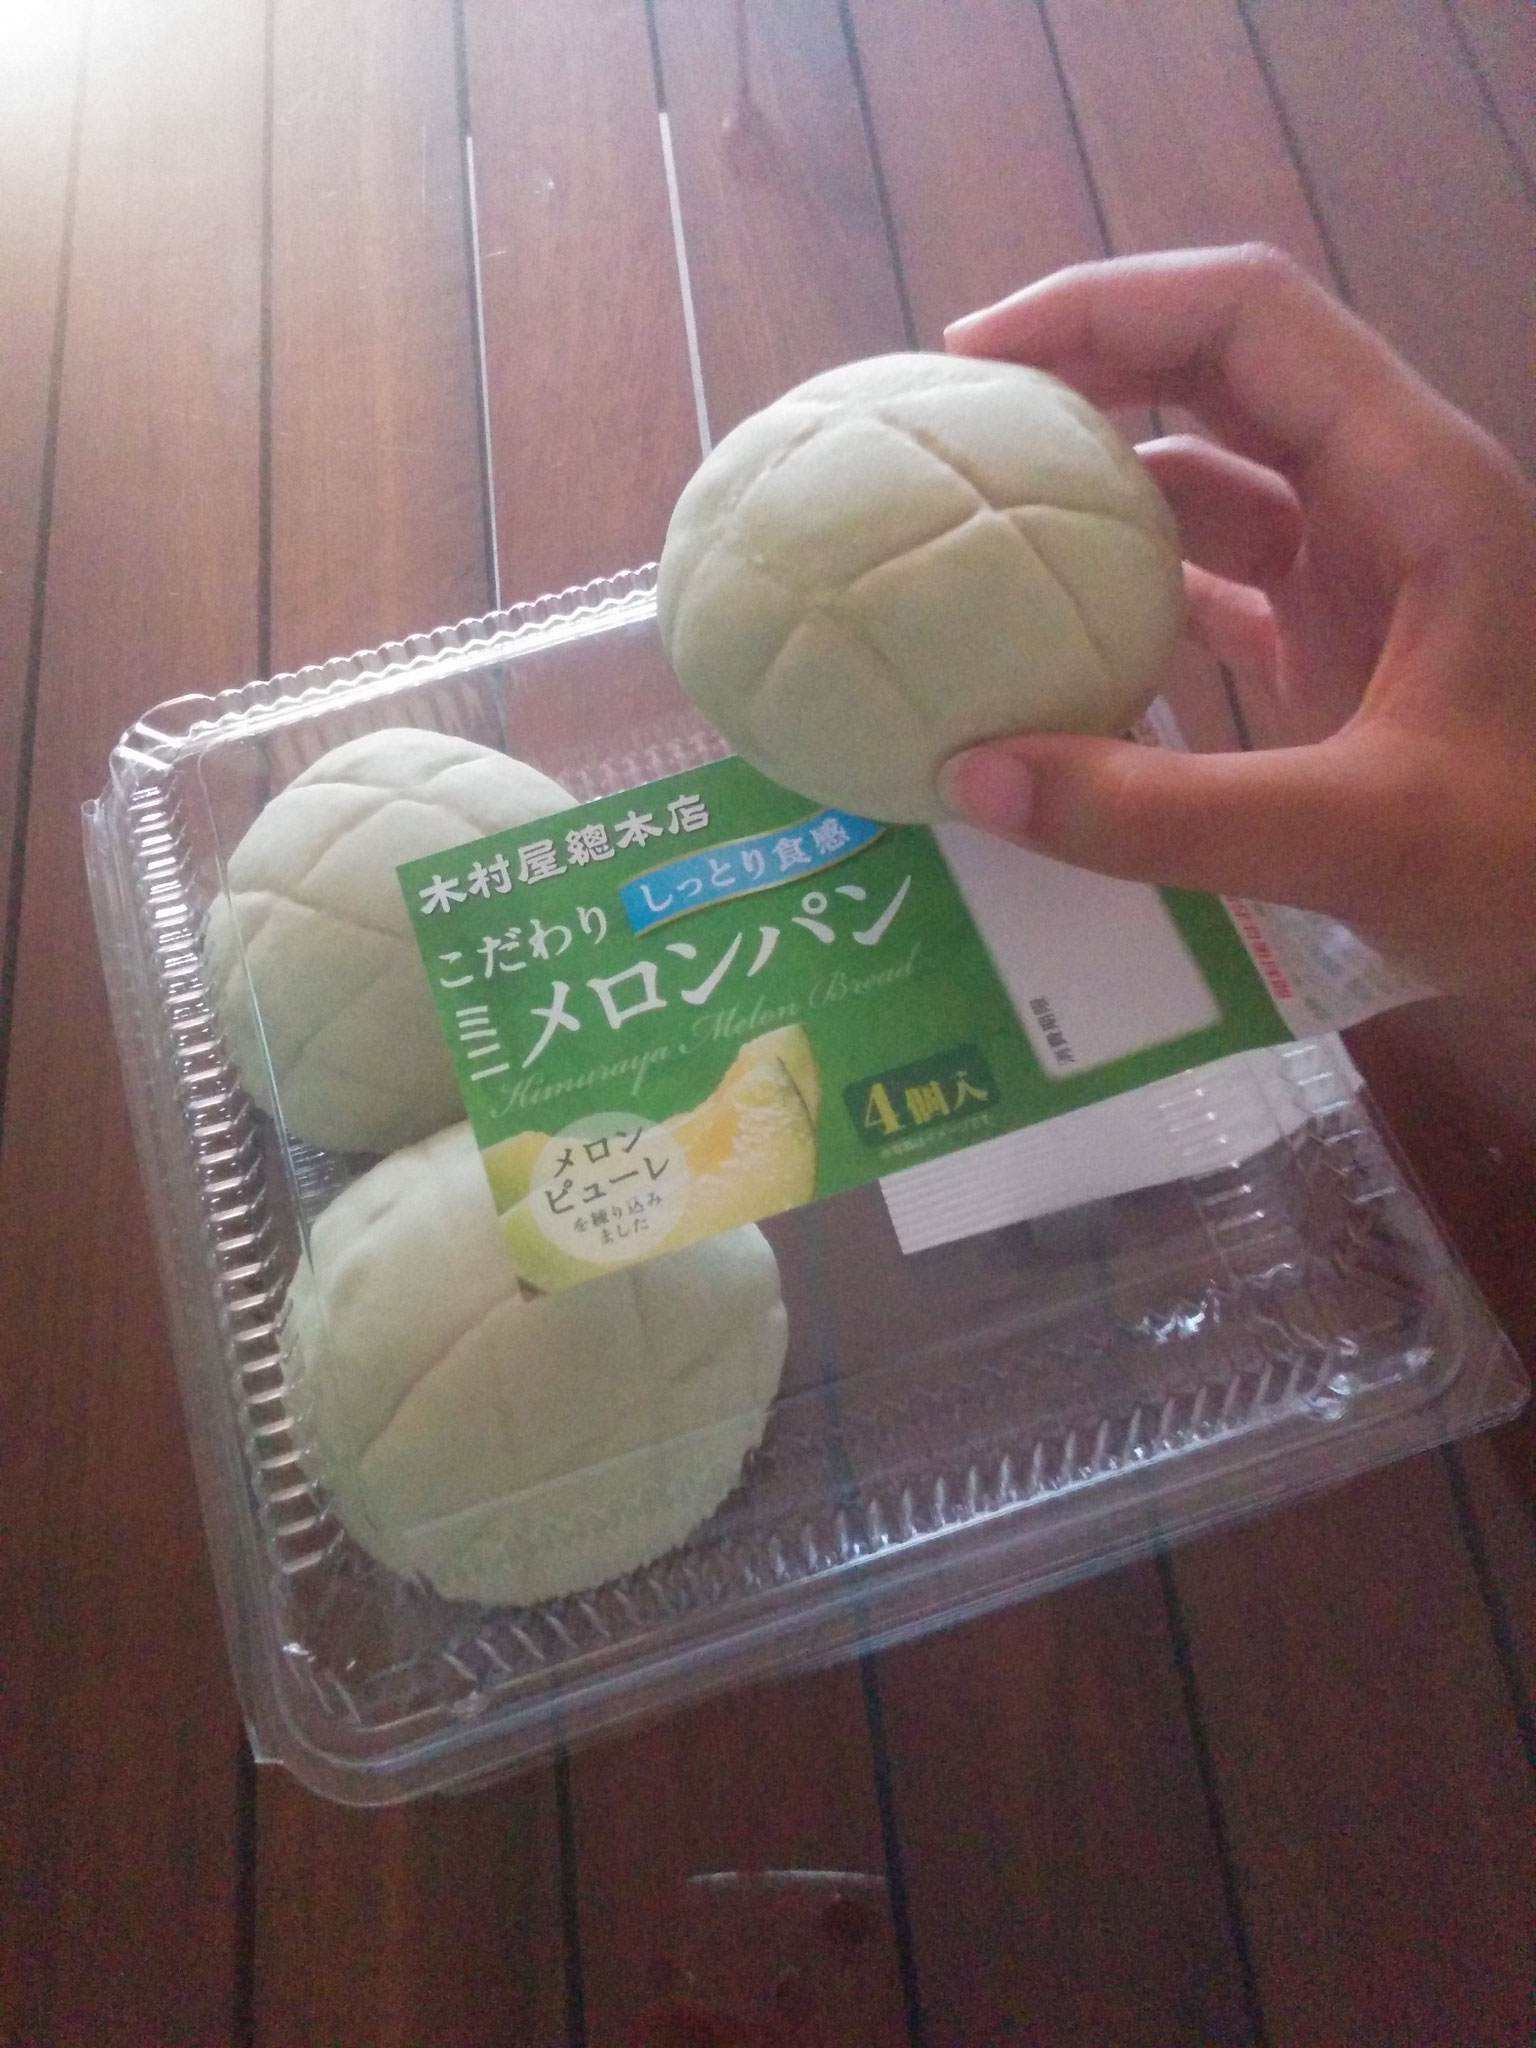 I bought melon pan the day I tried it first at school